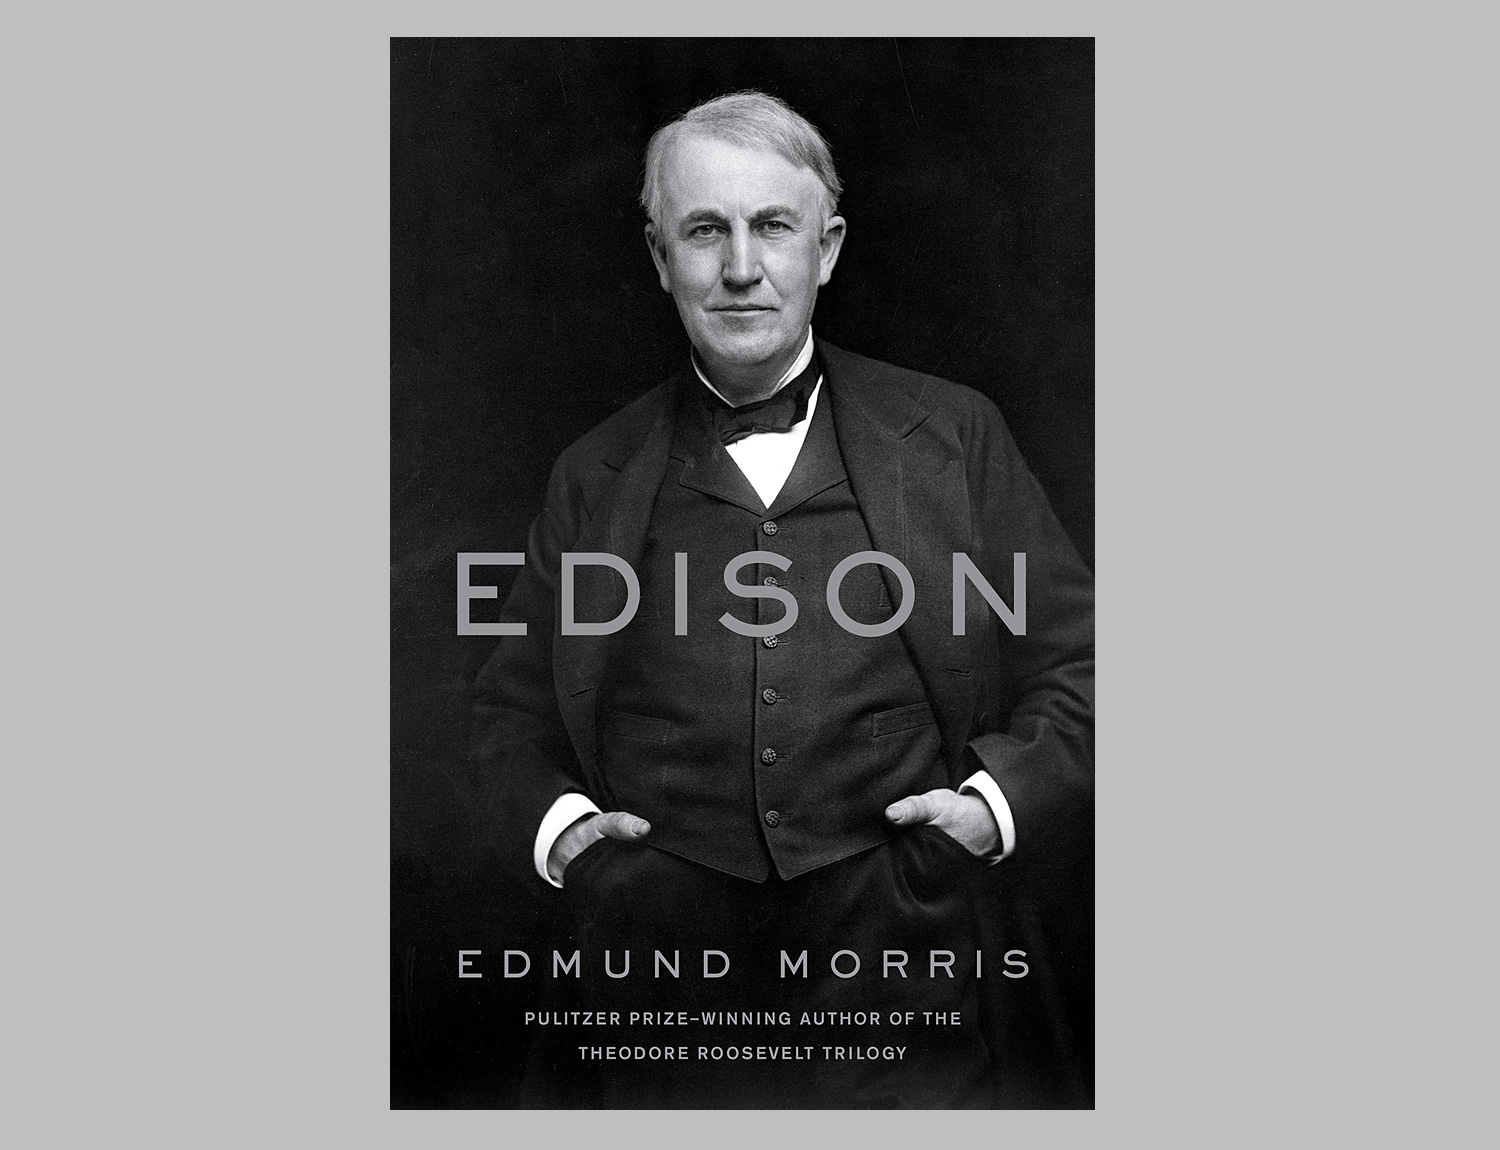 Thomas Edison Finally Gets the Biography He Deserves at werd.com